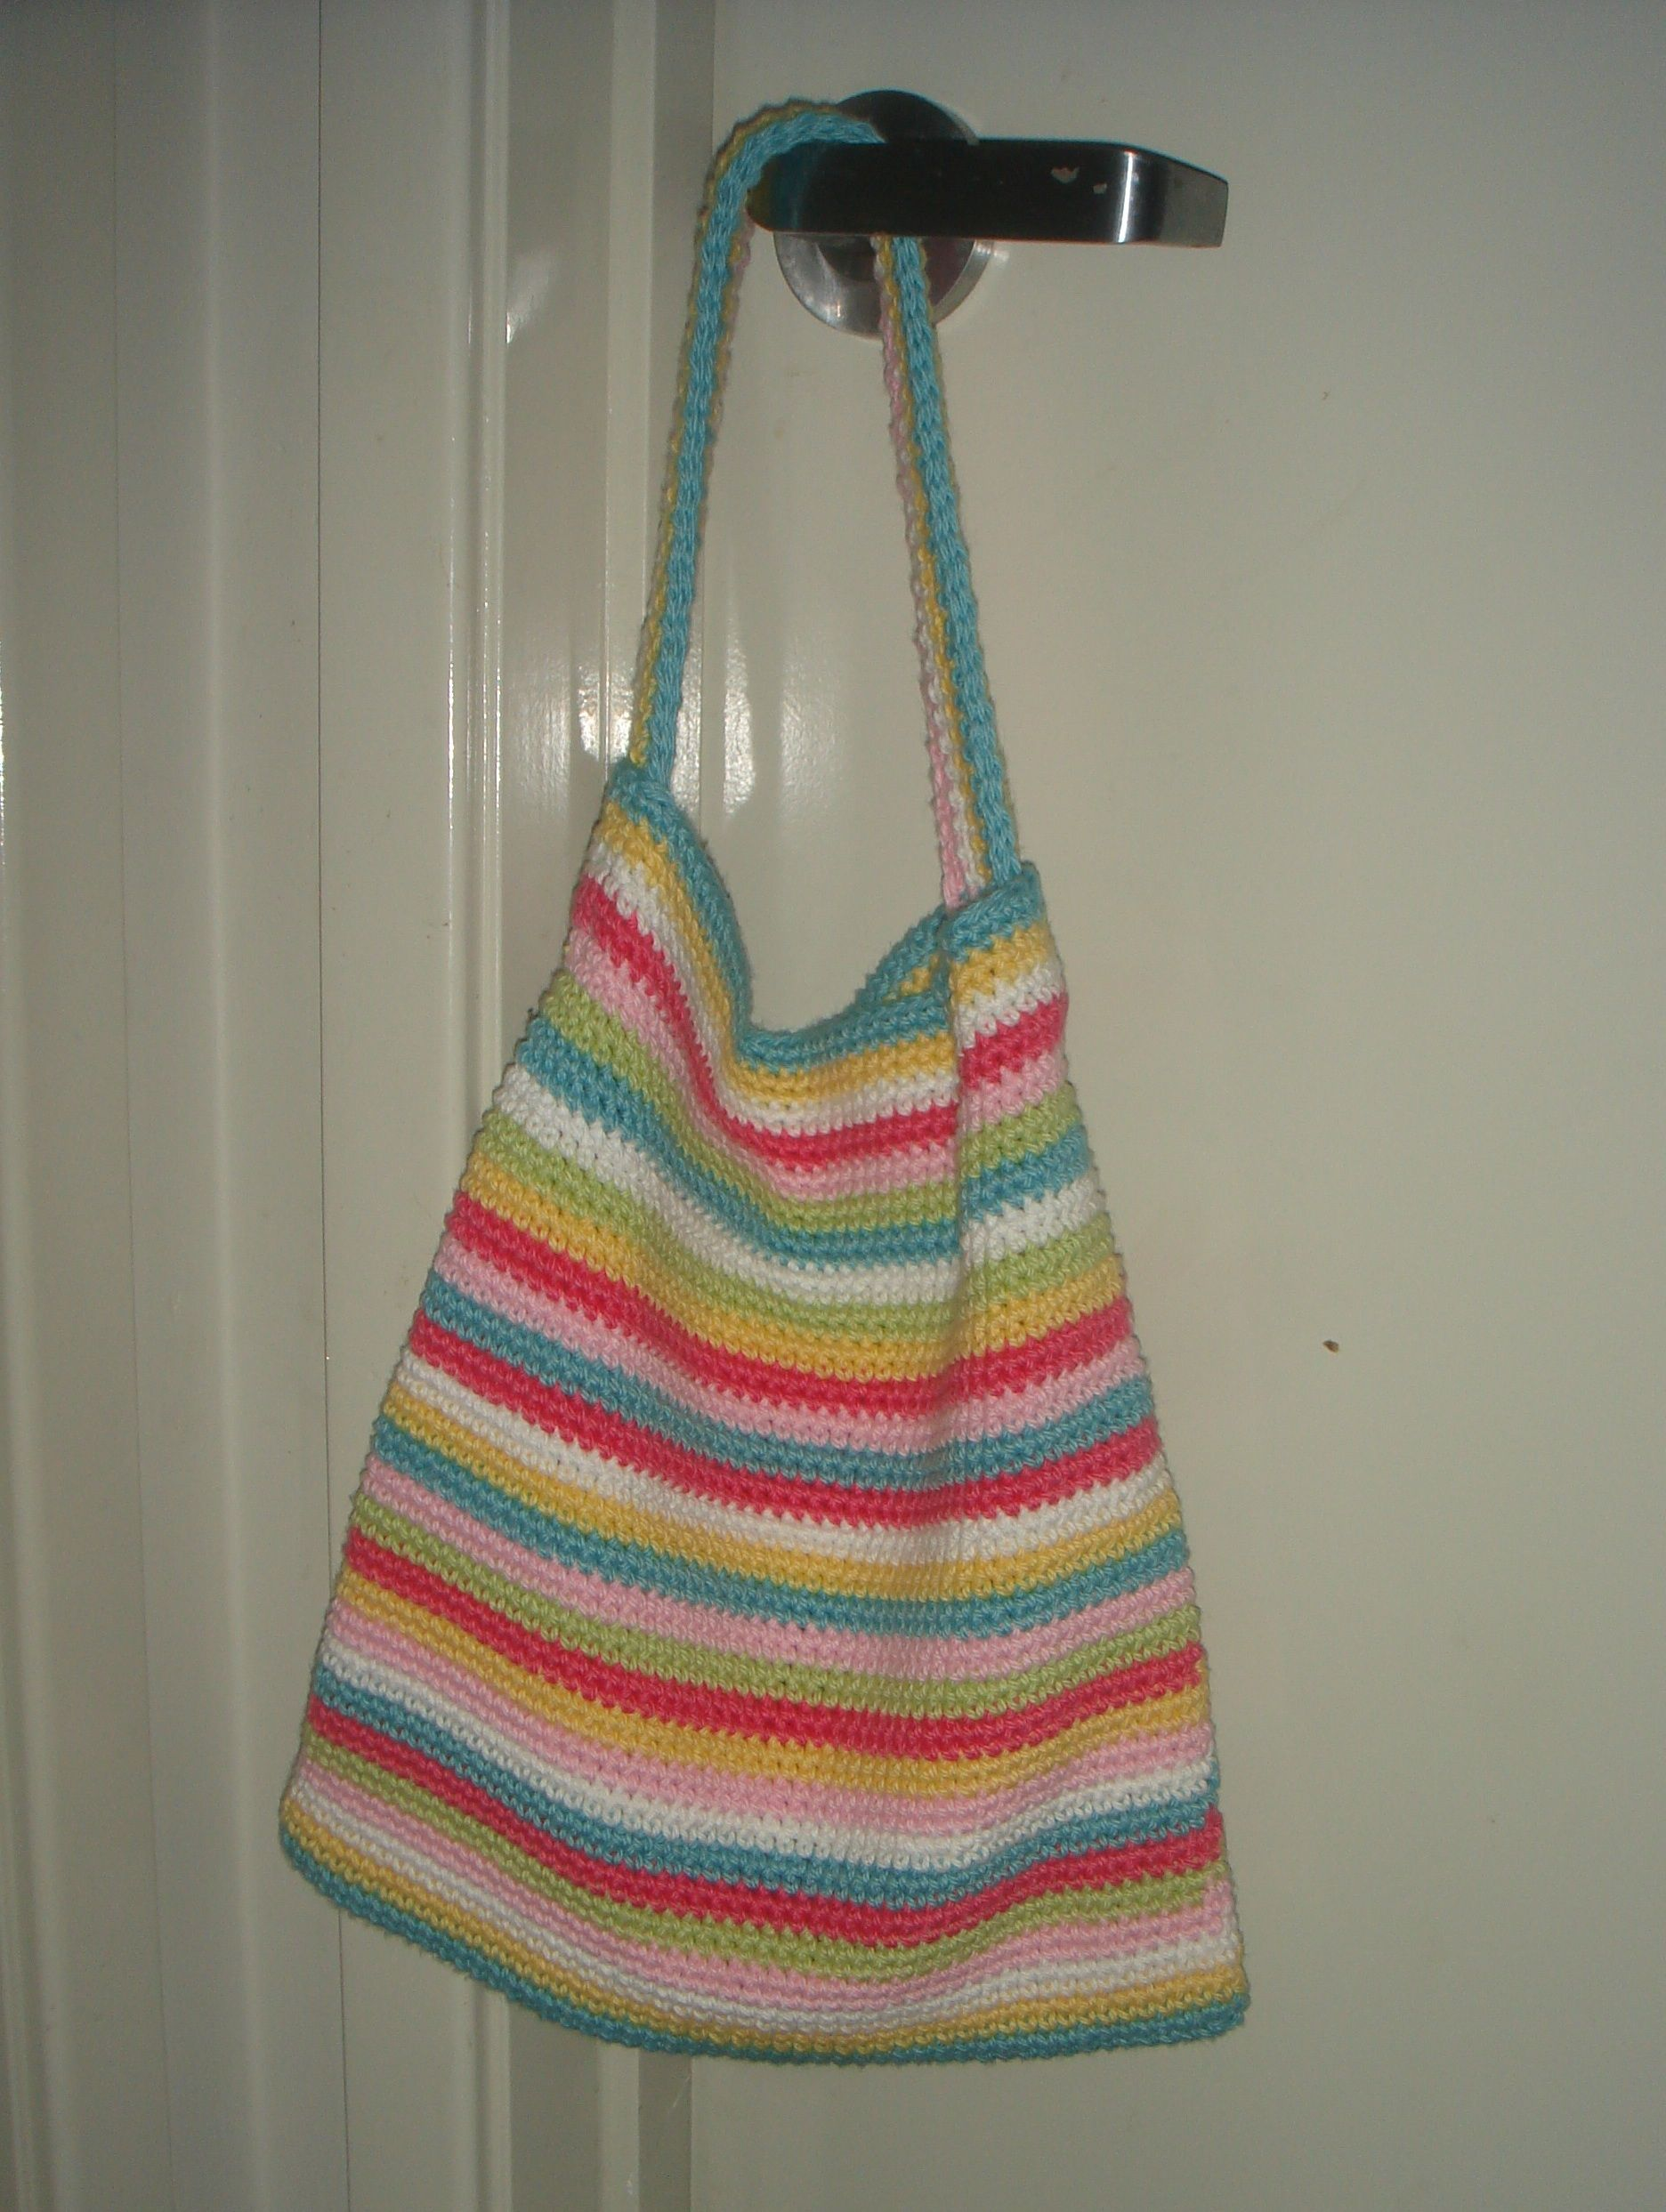 Book Bag Free Beginners Pattern Crafty Crocheting Crochet